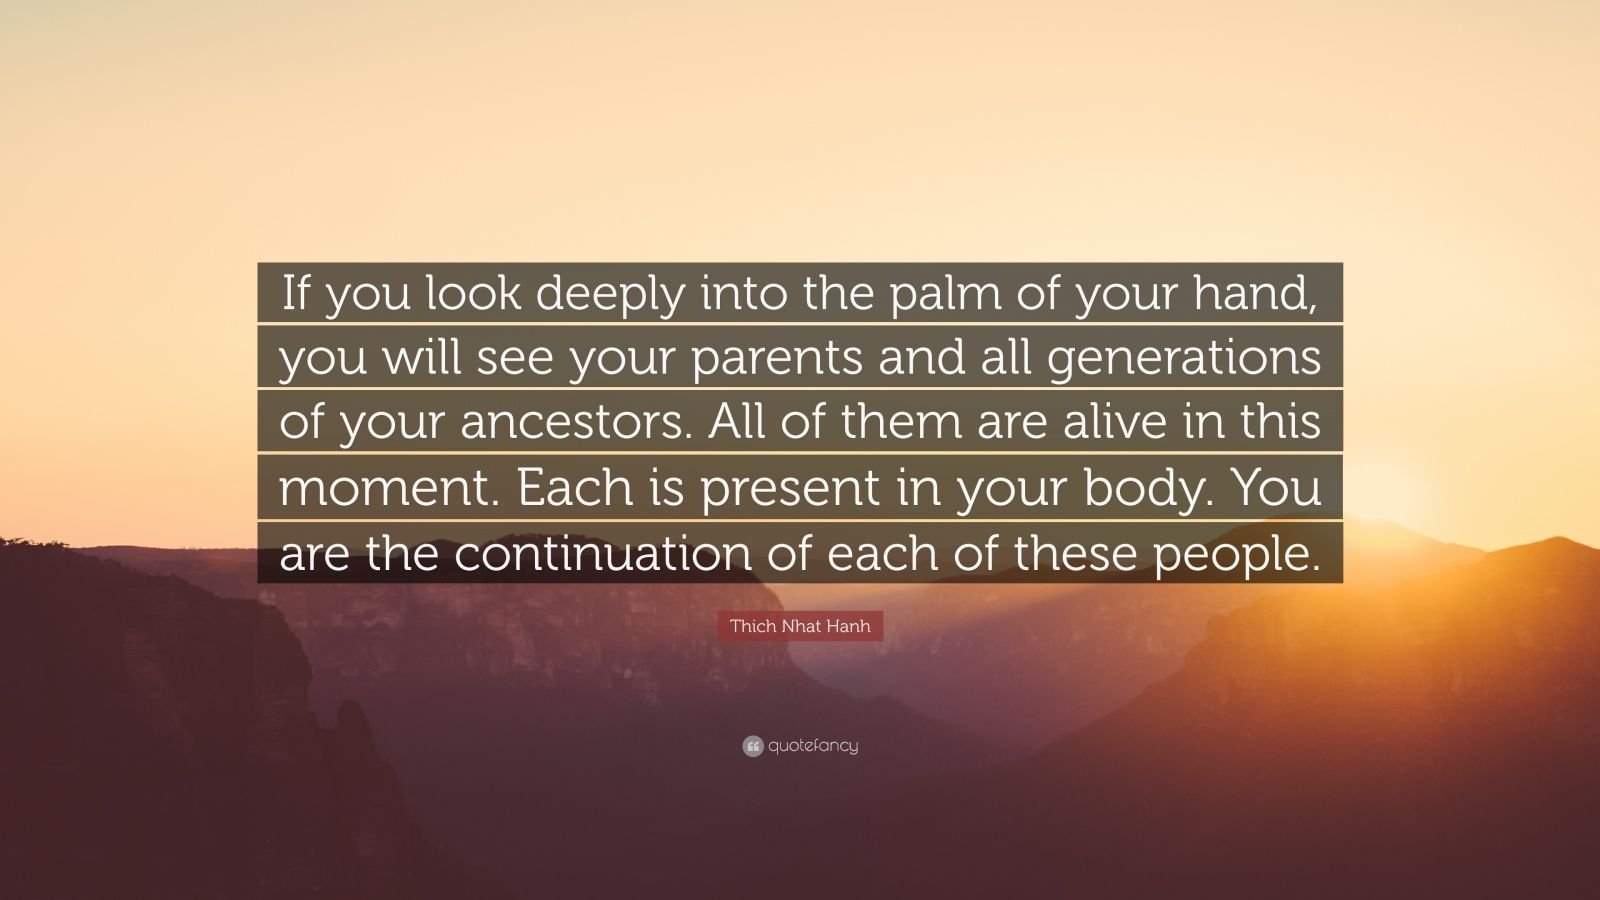 "Thich Nhat Hanh Quote: ""If you look deeply into the palm of your hand, you will see your parents and all generations of your ancestors. All of them are alive in this moment. Each is present in your body. You are the continuation of each of these people."""